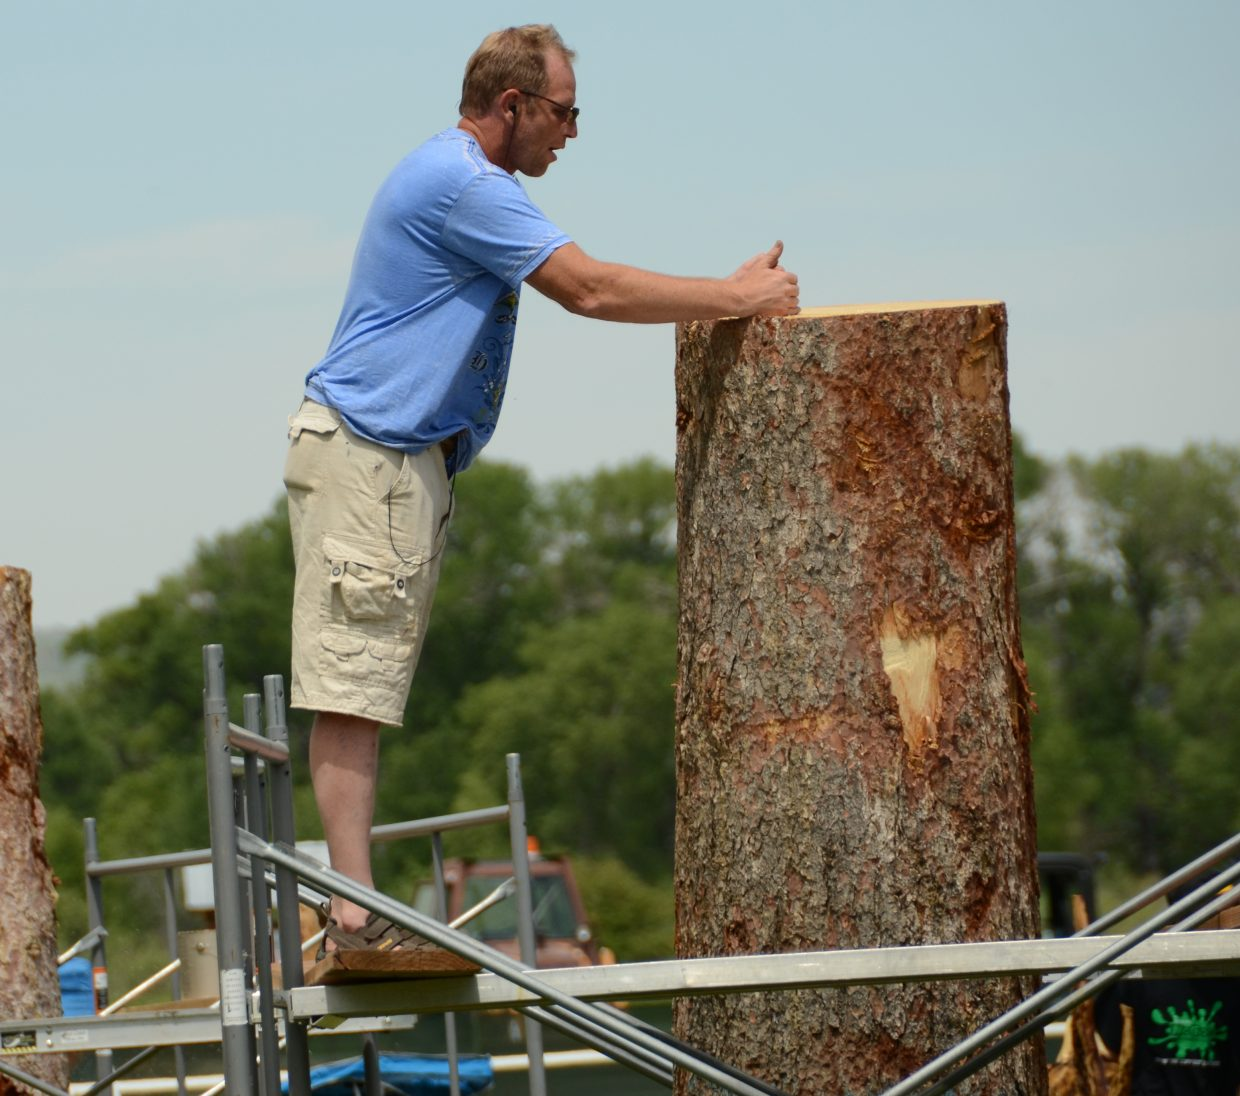 Ron Eye, of Vernal, Utah, envisions what he needs to do with his tree trunk before cutting into it Wednesday morning at Loudy Simpson Park.